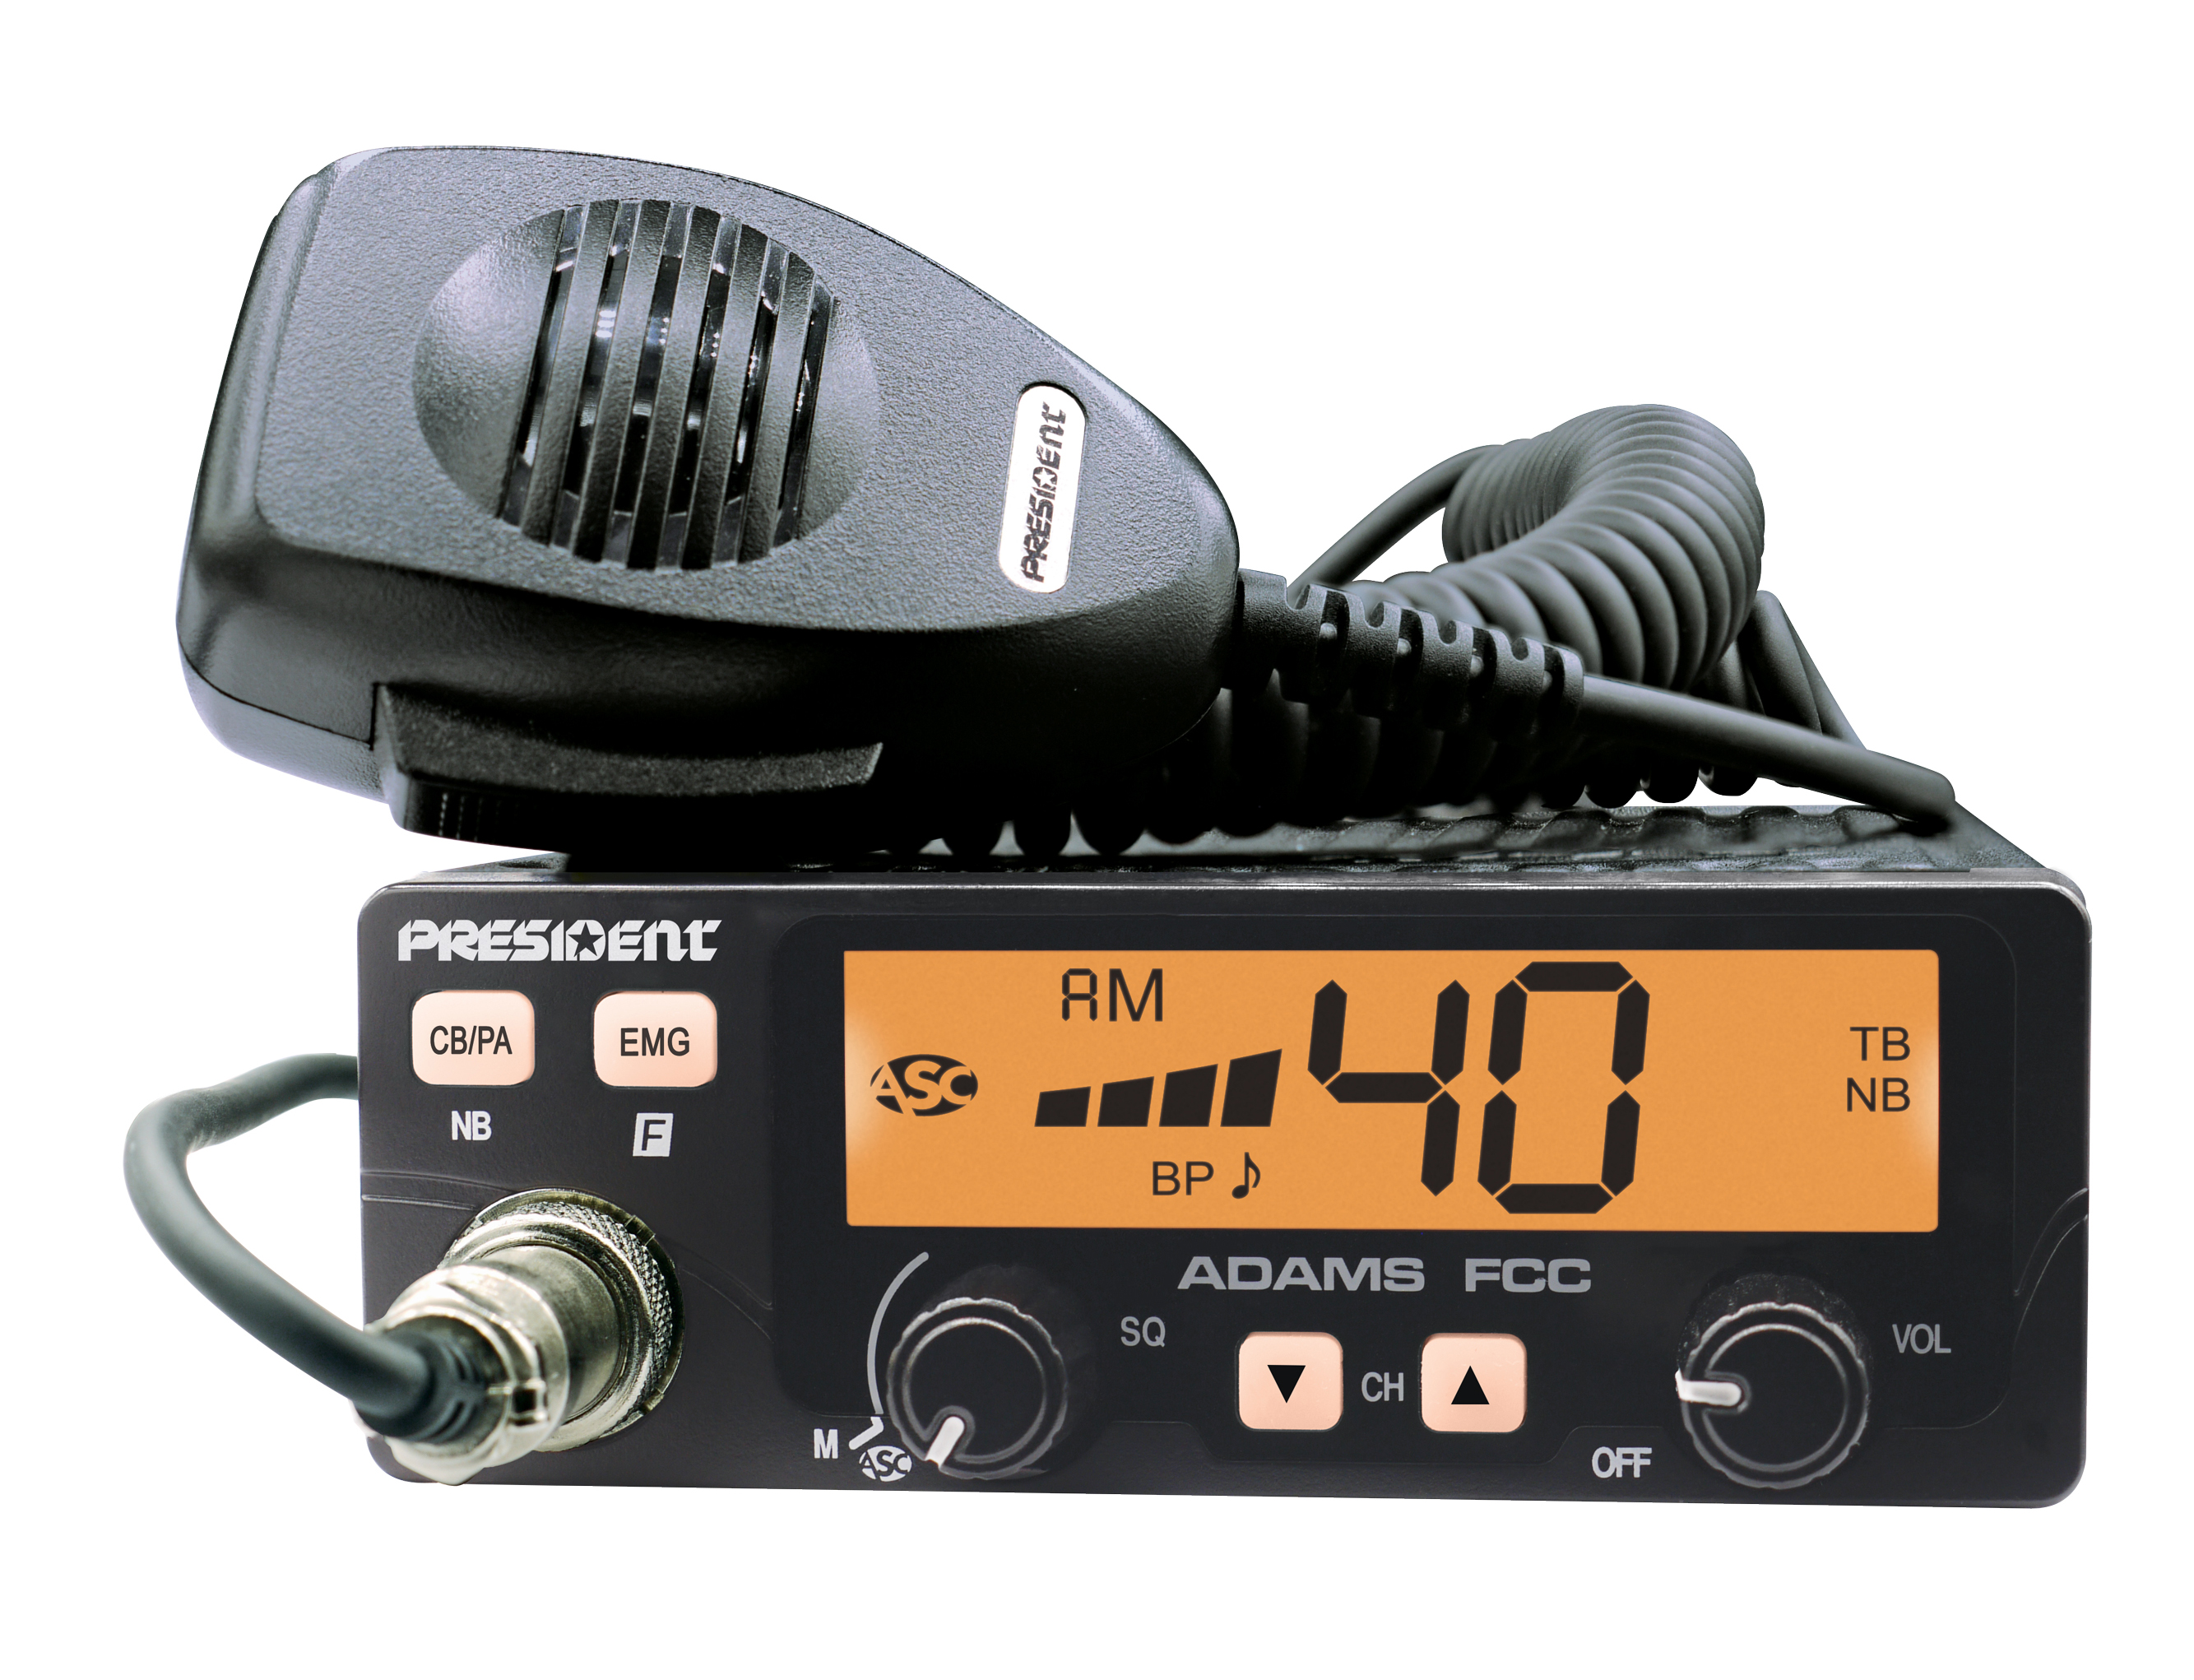 ADAMS - President 40 Channel CB Radio with Talkback and Color Display Options